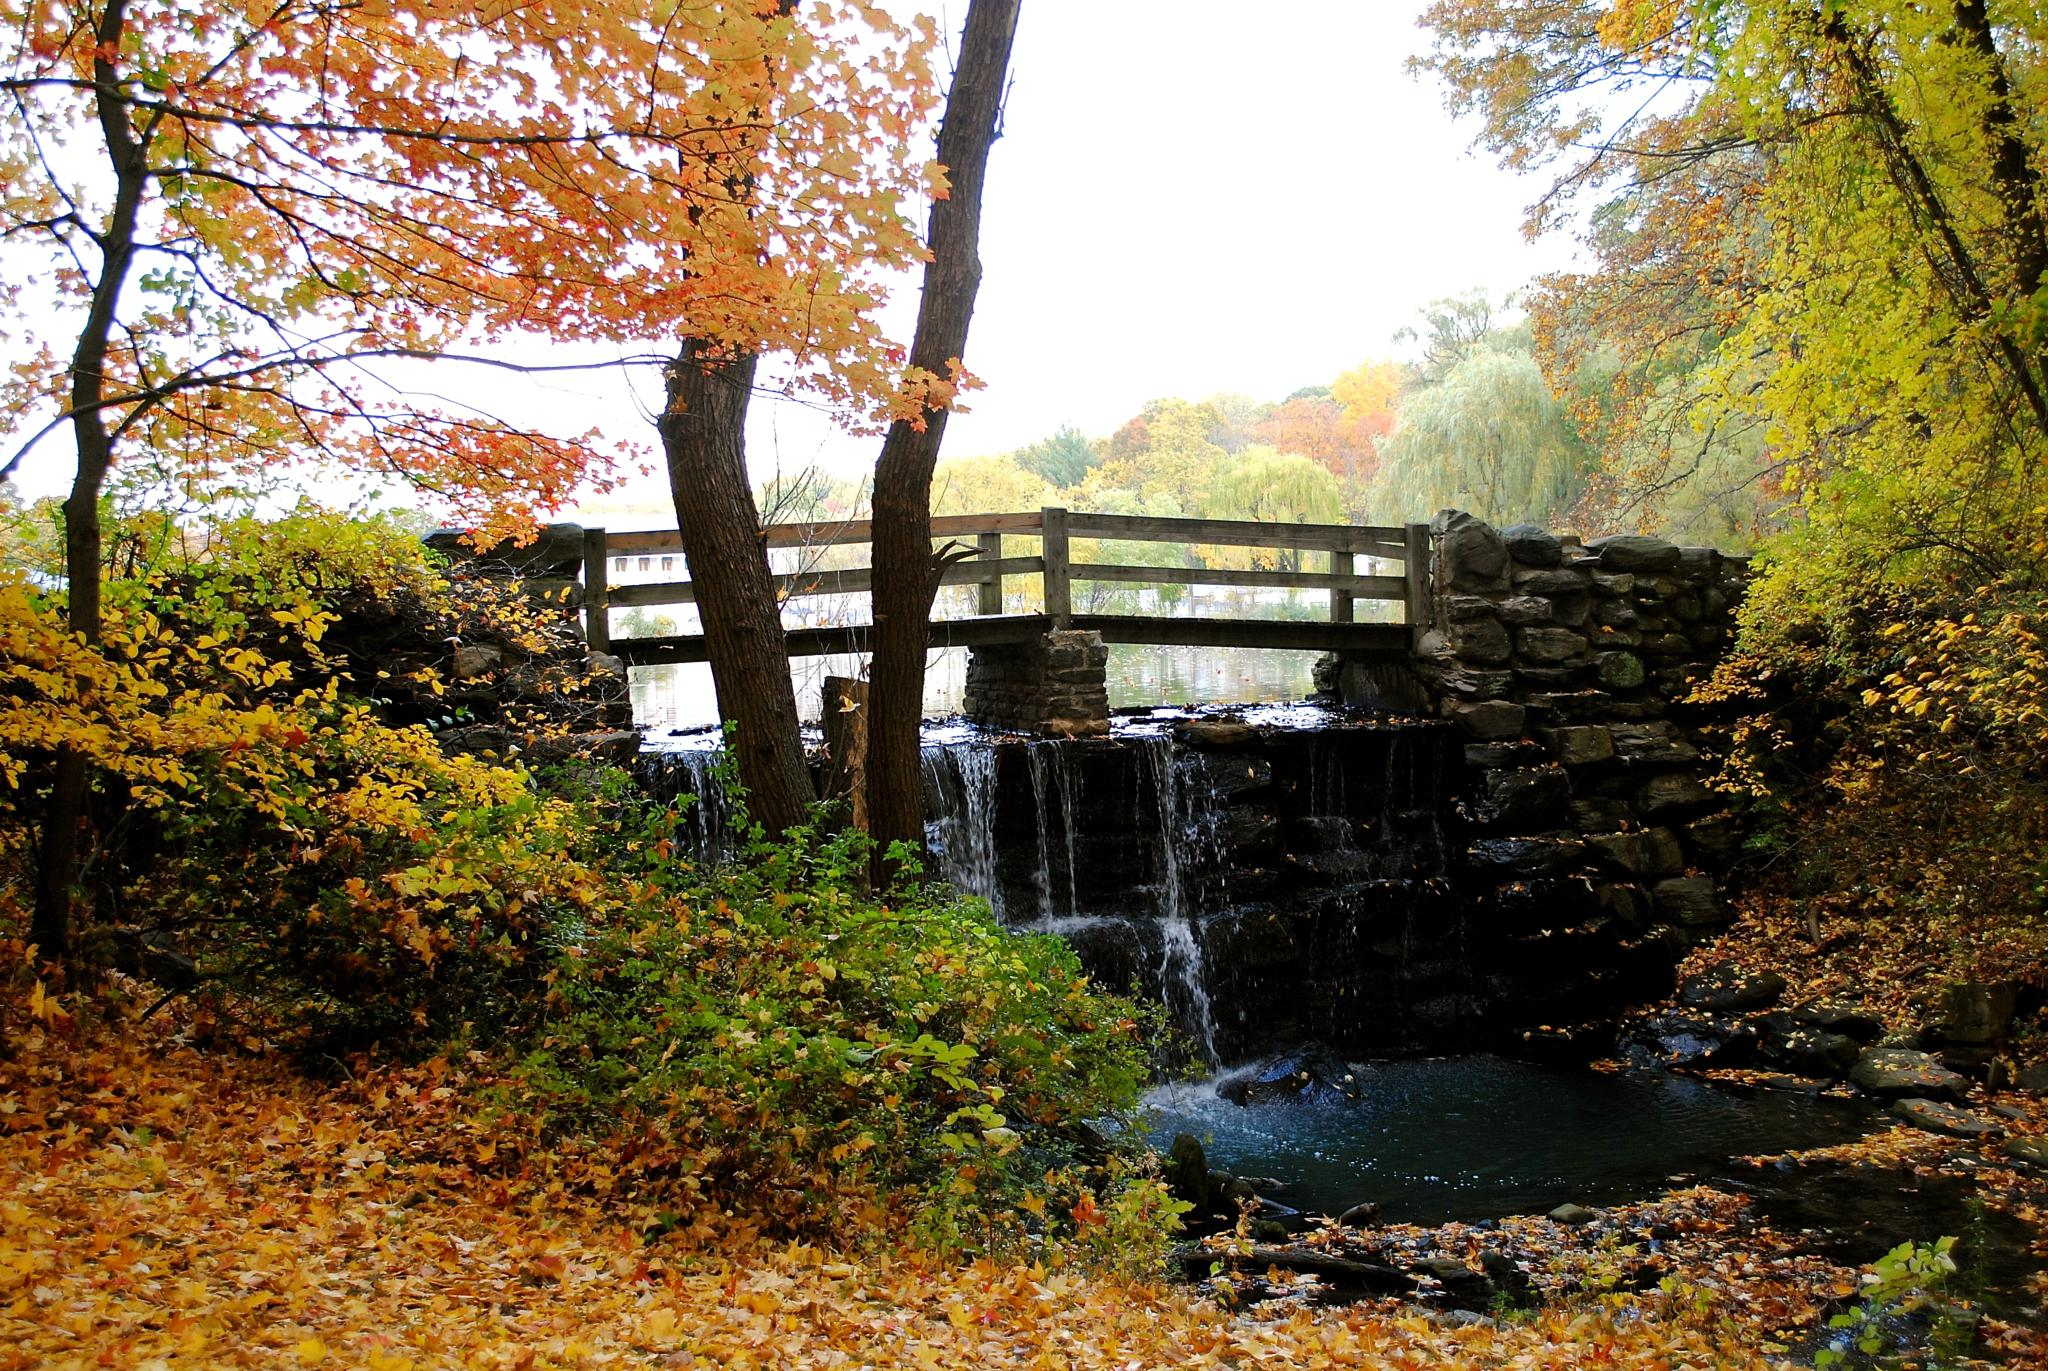 Autumn in the Park by Kathy Lebron Photography